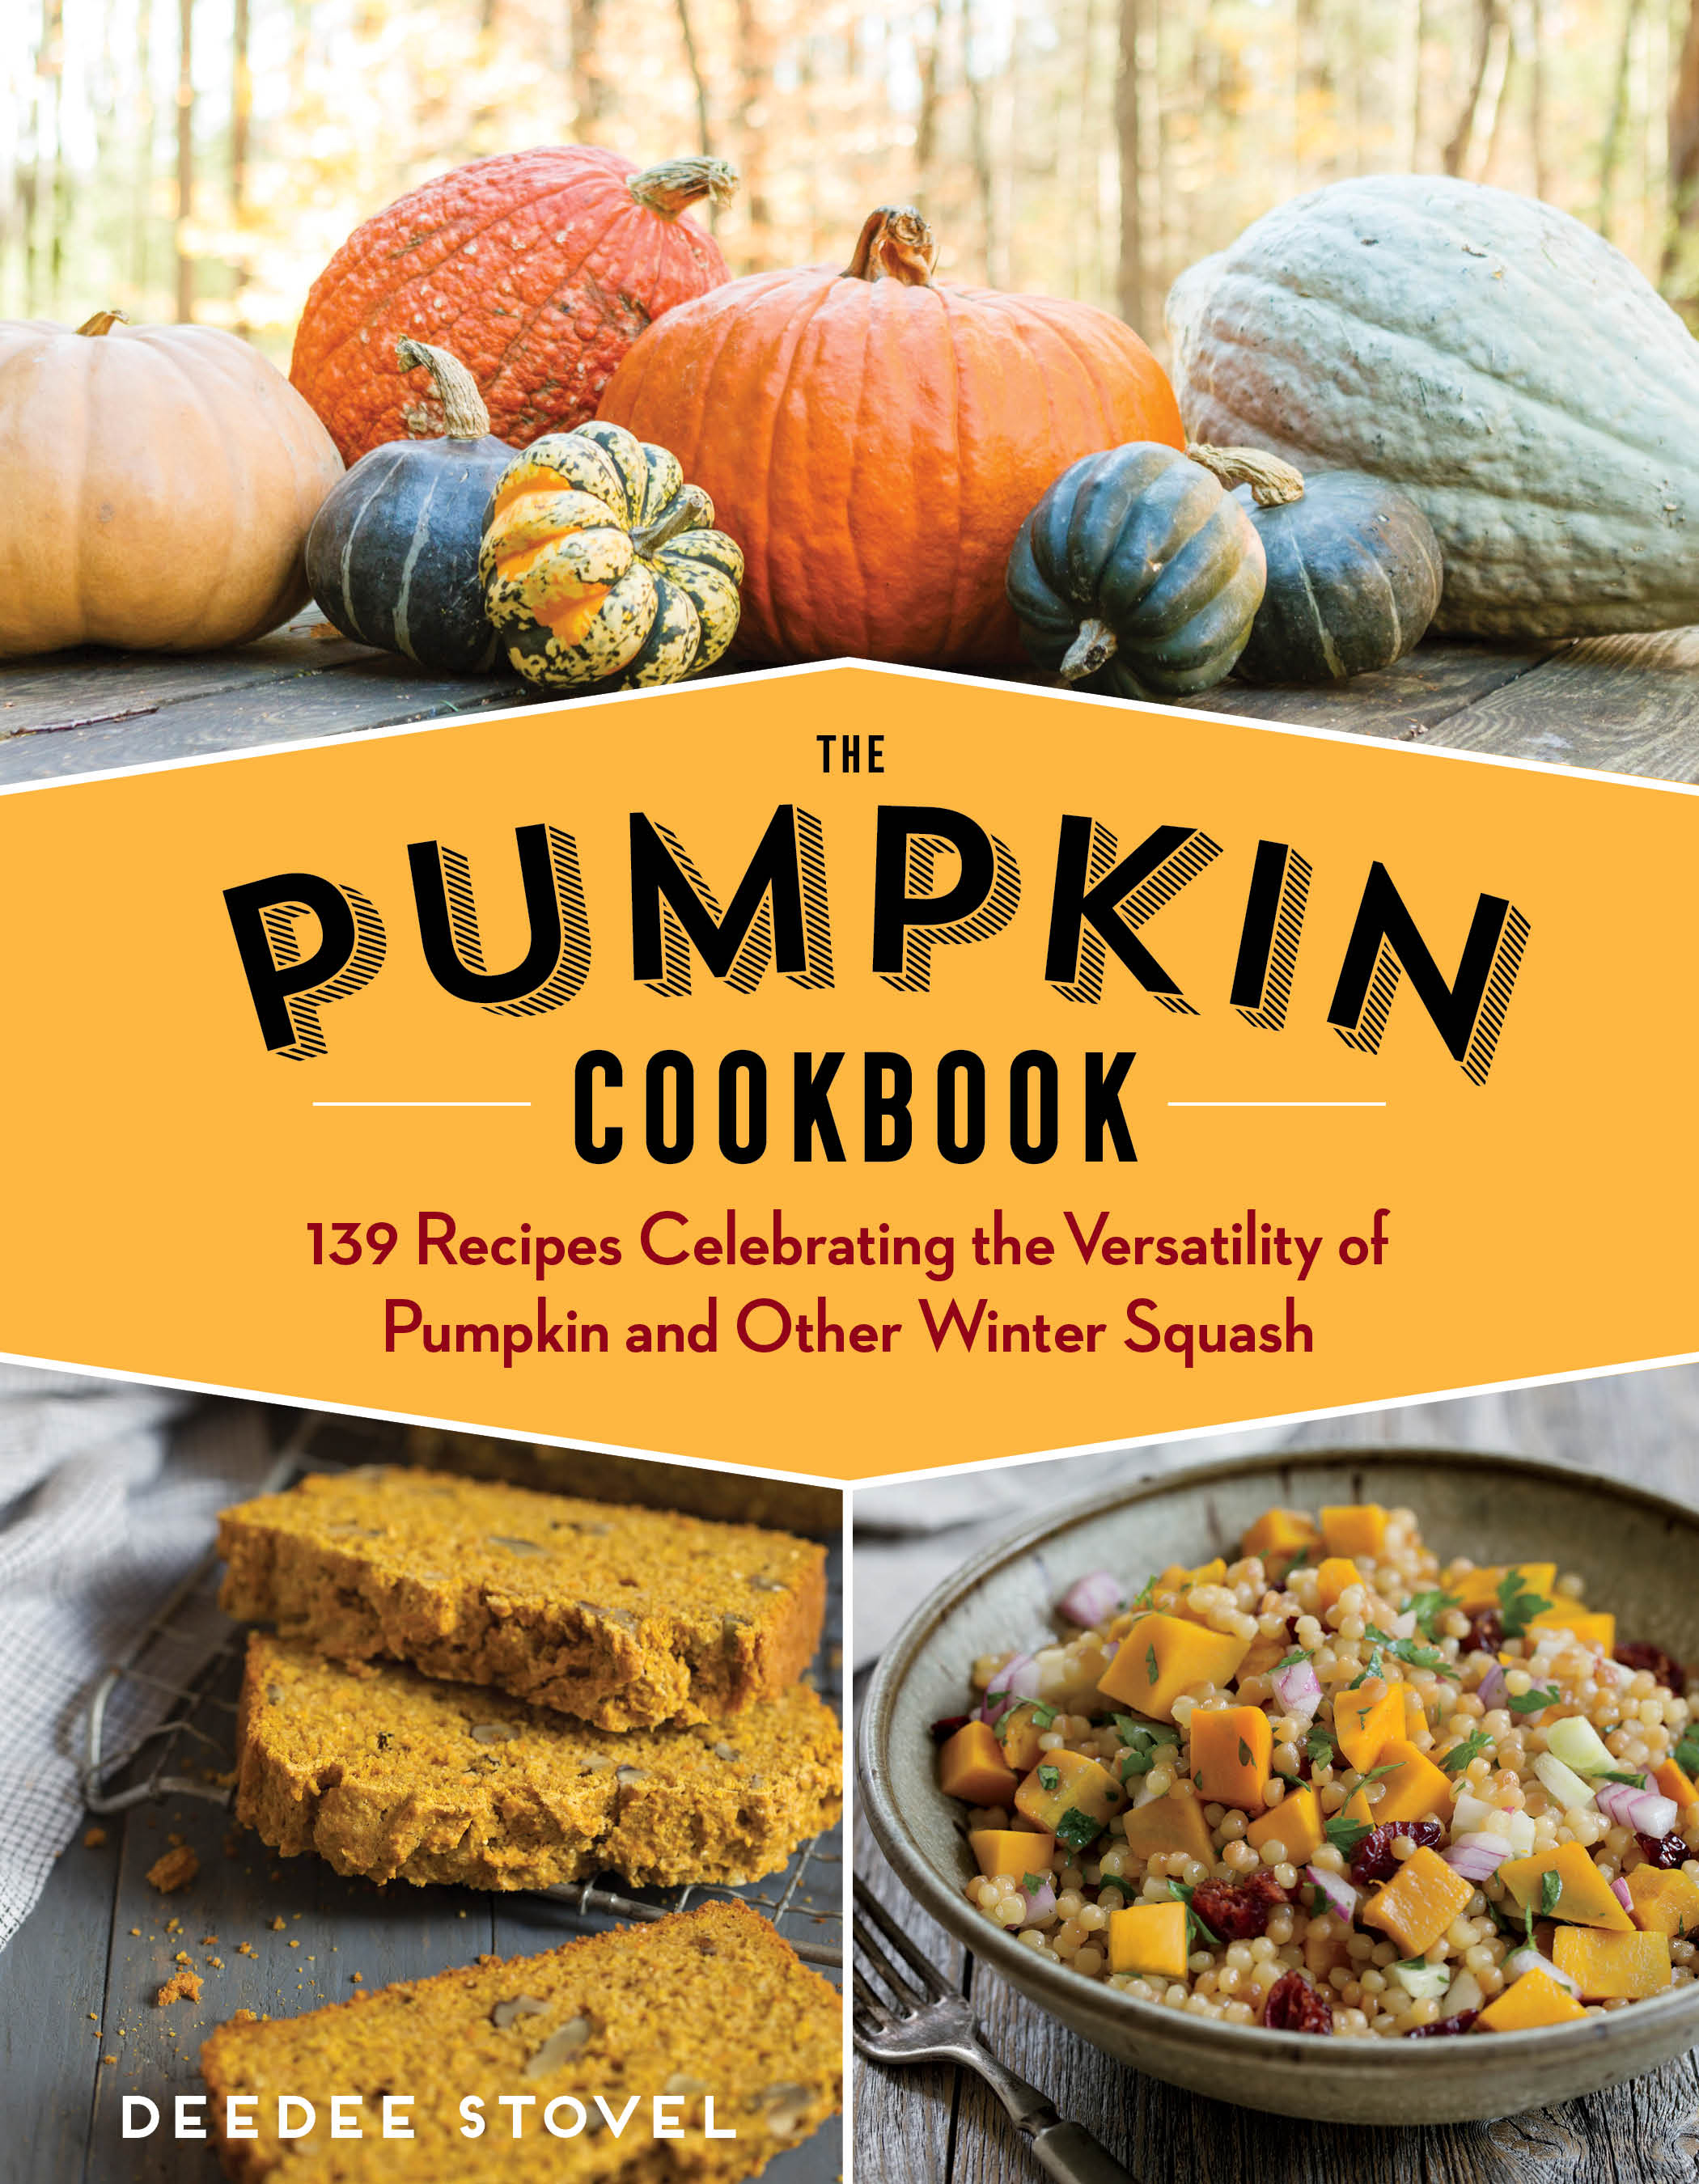 The Pumpkin Cookbook, 2nd Edition 139 Recipes Celebrating the Versatility of Pumpkin and Other Winter Squash - DeeDee Stovel